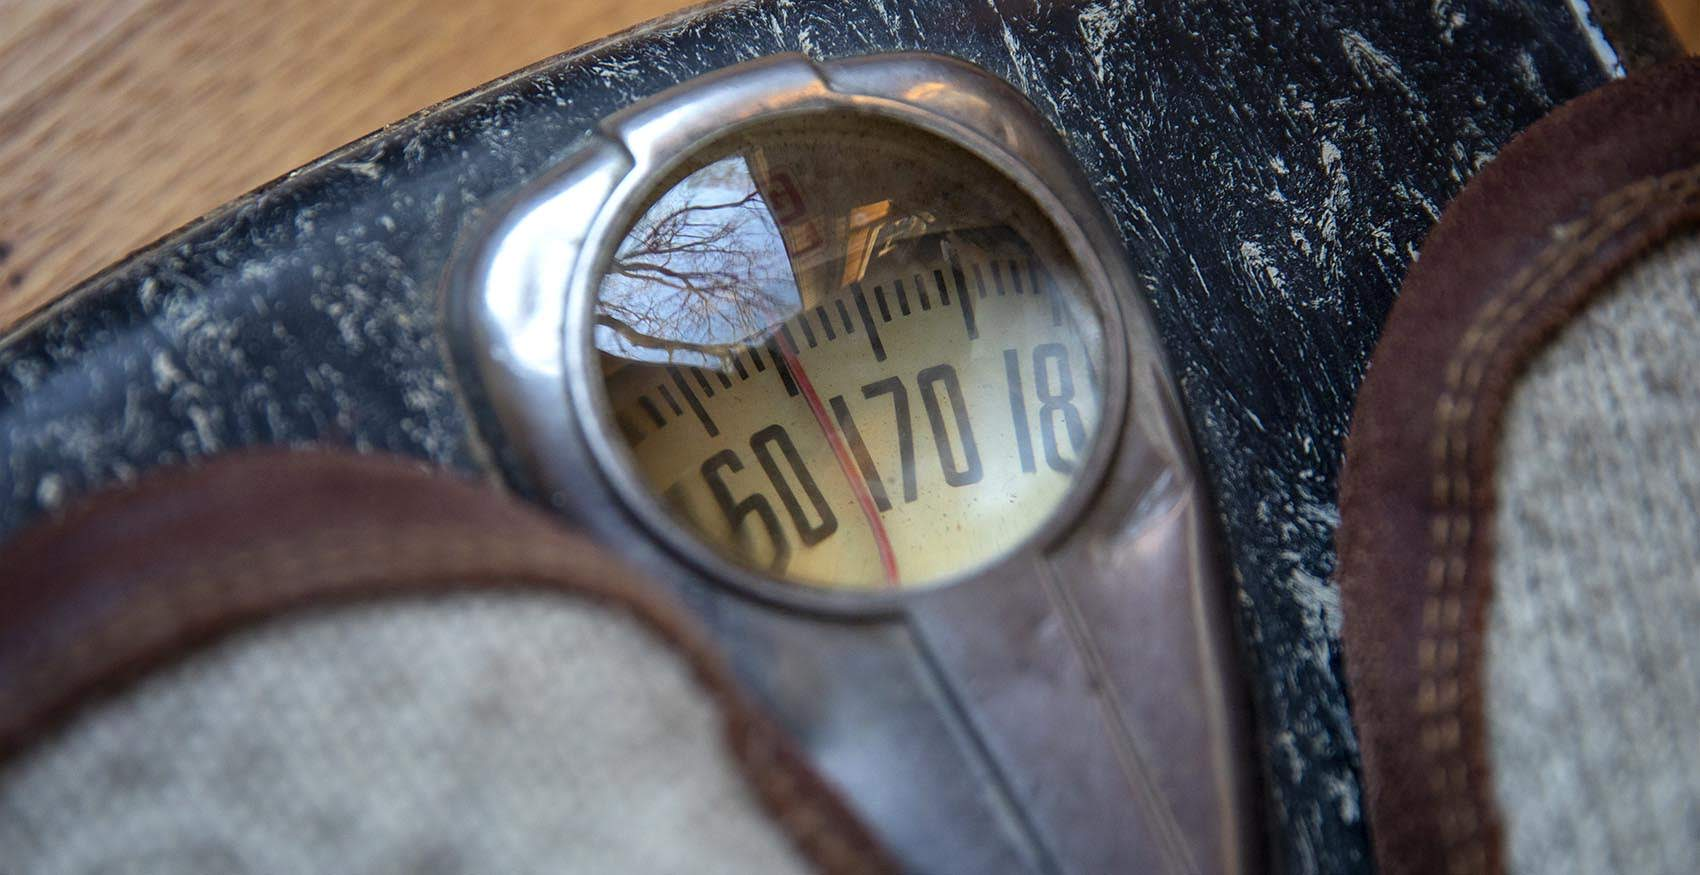 A person stands on an old body weight scale. (Robin Lubbock/WBUR)